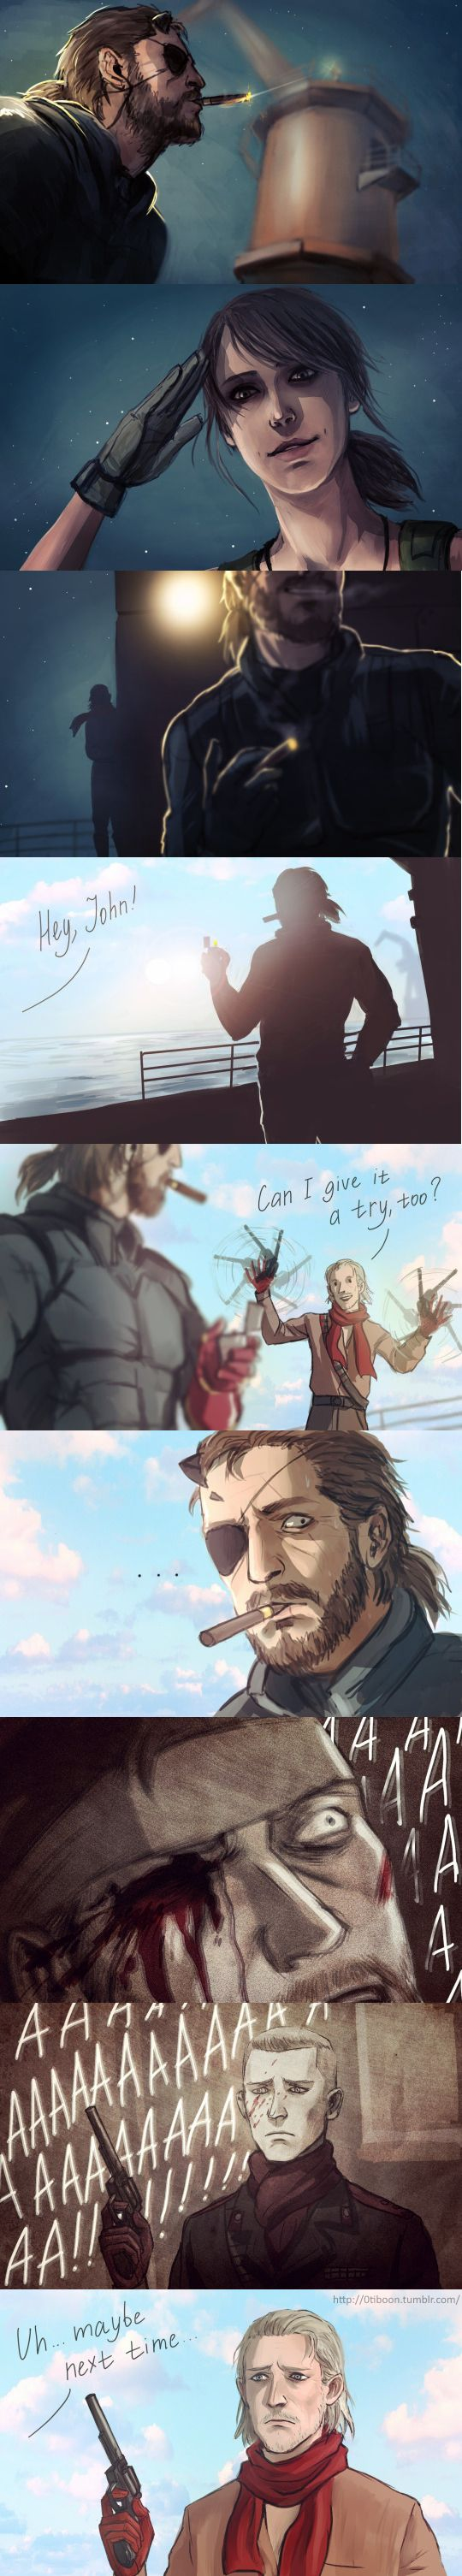 Ocelot's face on the last frame though